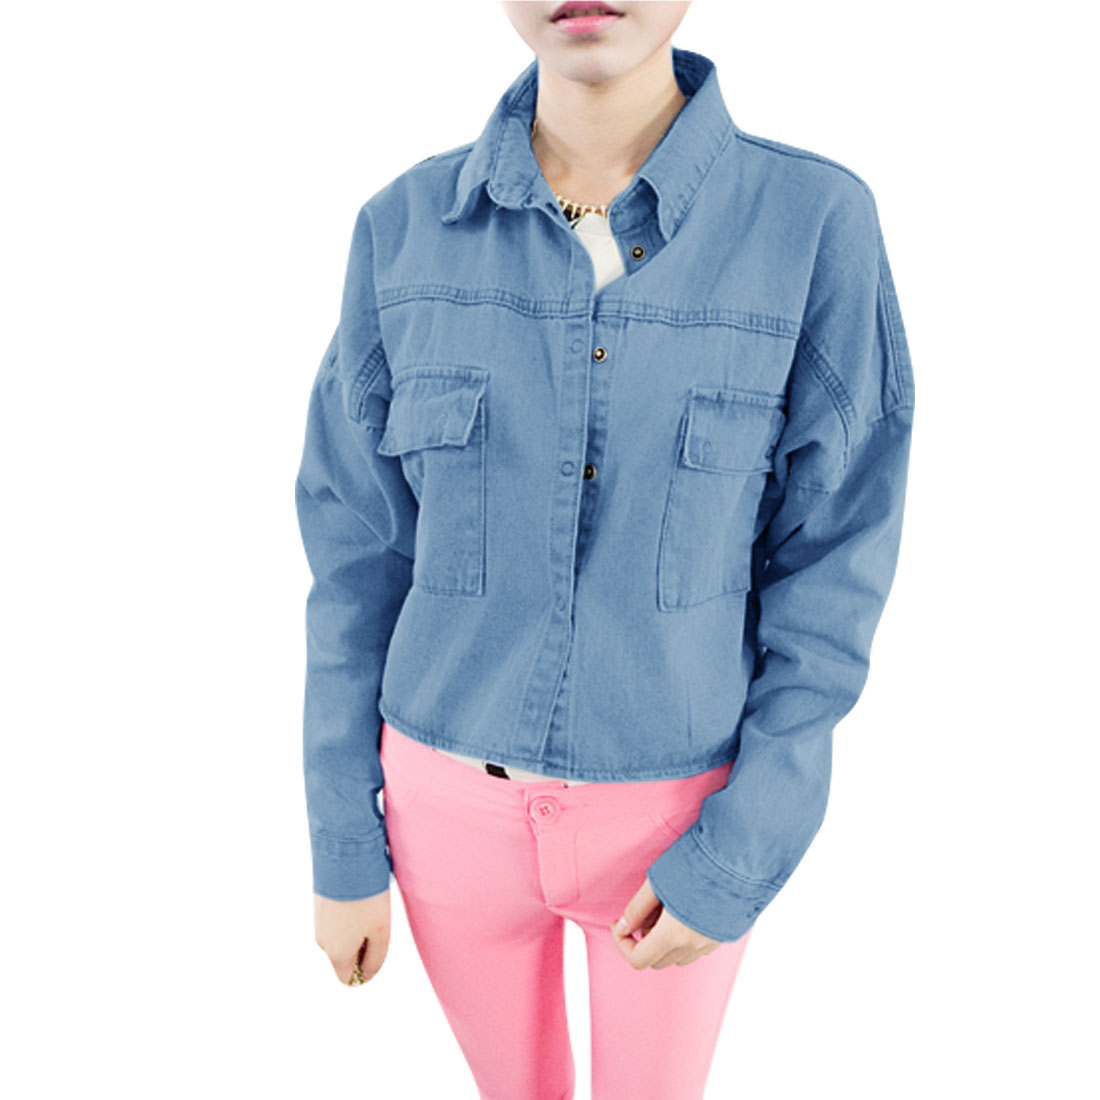 Lady Point Collar Batwing Long Sleeve Snap Button Light Demin Blue Jacket S